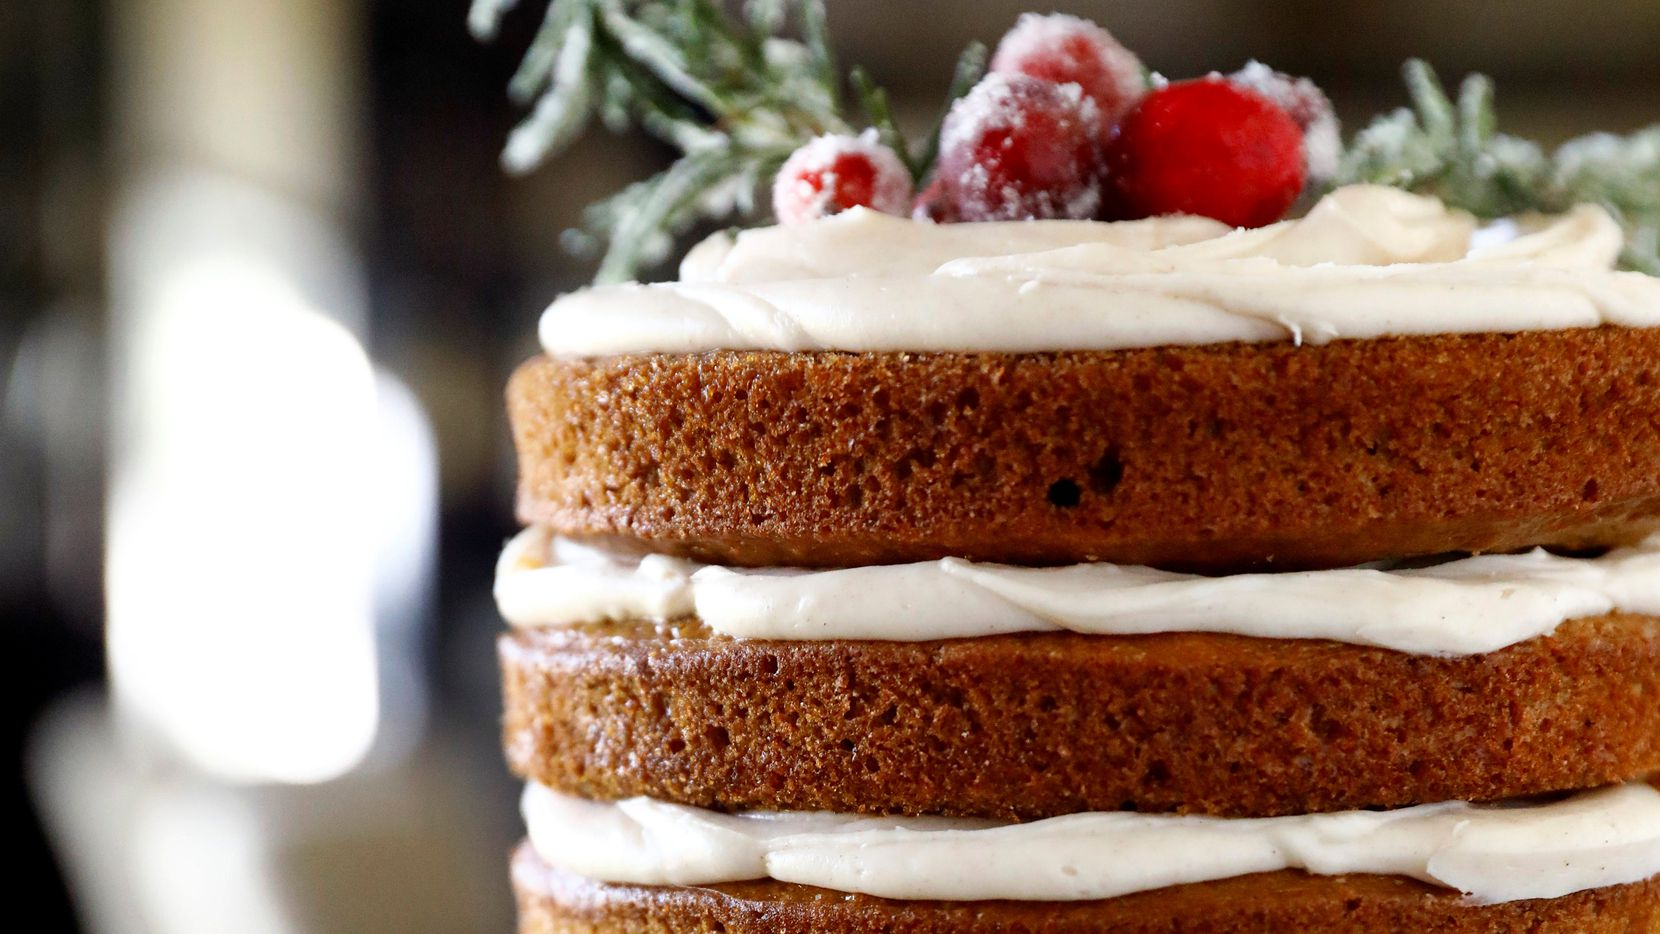 Gingerbread Layer Cake with Spiced Cream Cheese Icing  is made with buttermilk and sour cream to ensure a super-moist texture. (Tom Fox/The Dallas Morning News)